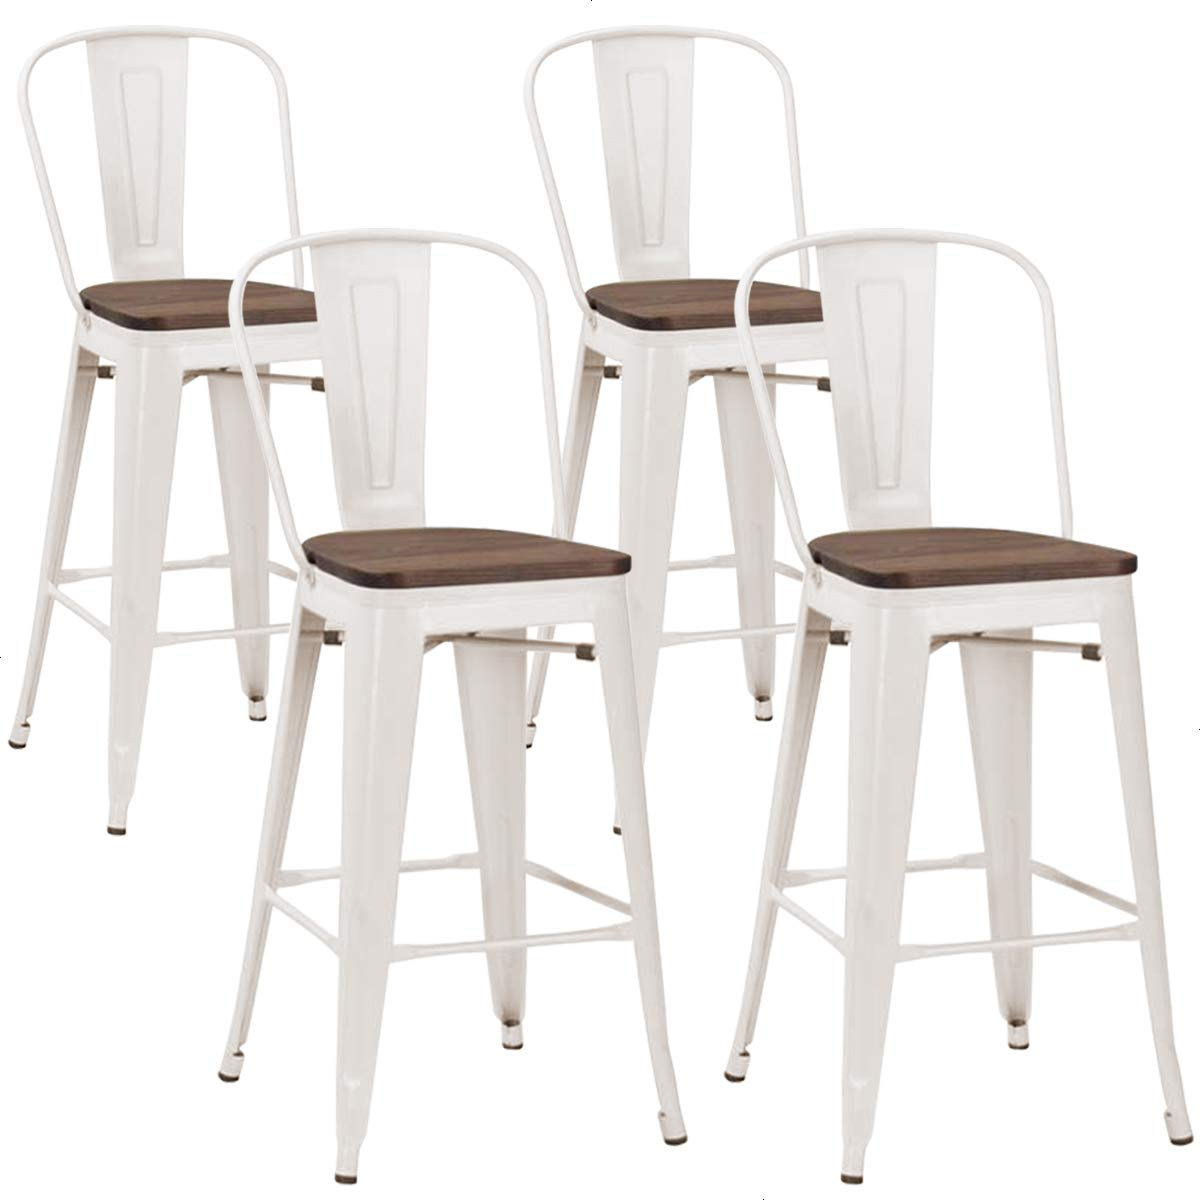 Tongli 30 Inches High Back Metal Stools Set of 4 Bar Height Stools 30 Metal Barstools with Back White, High Back